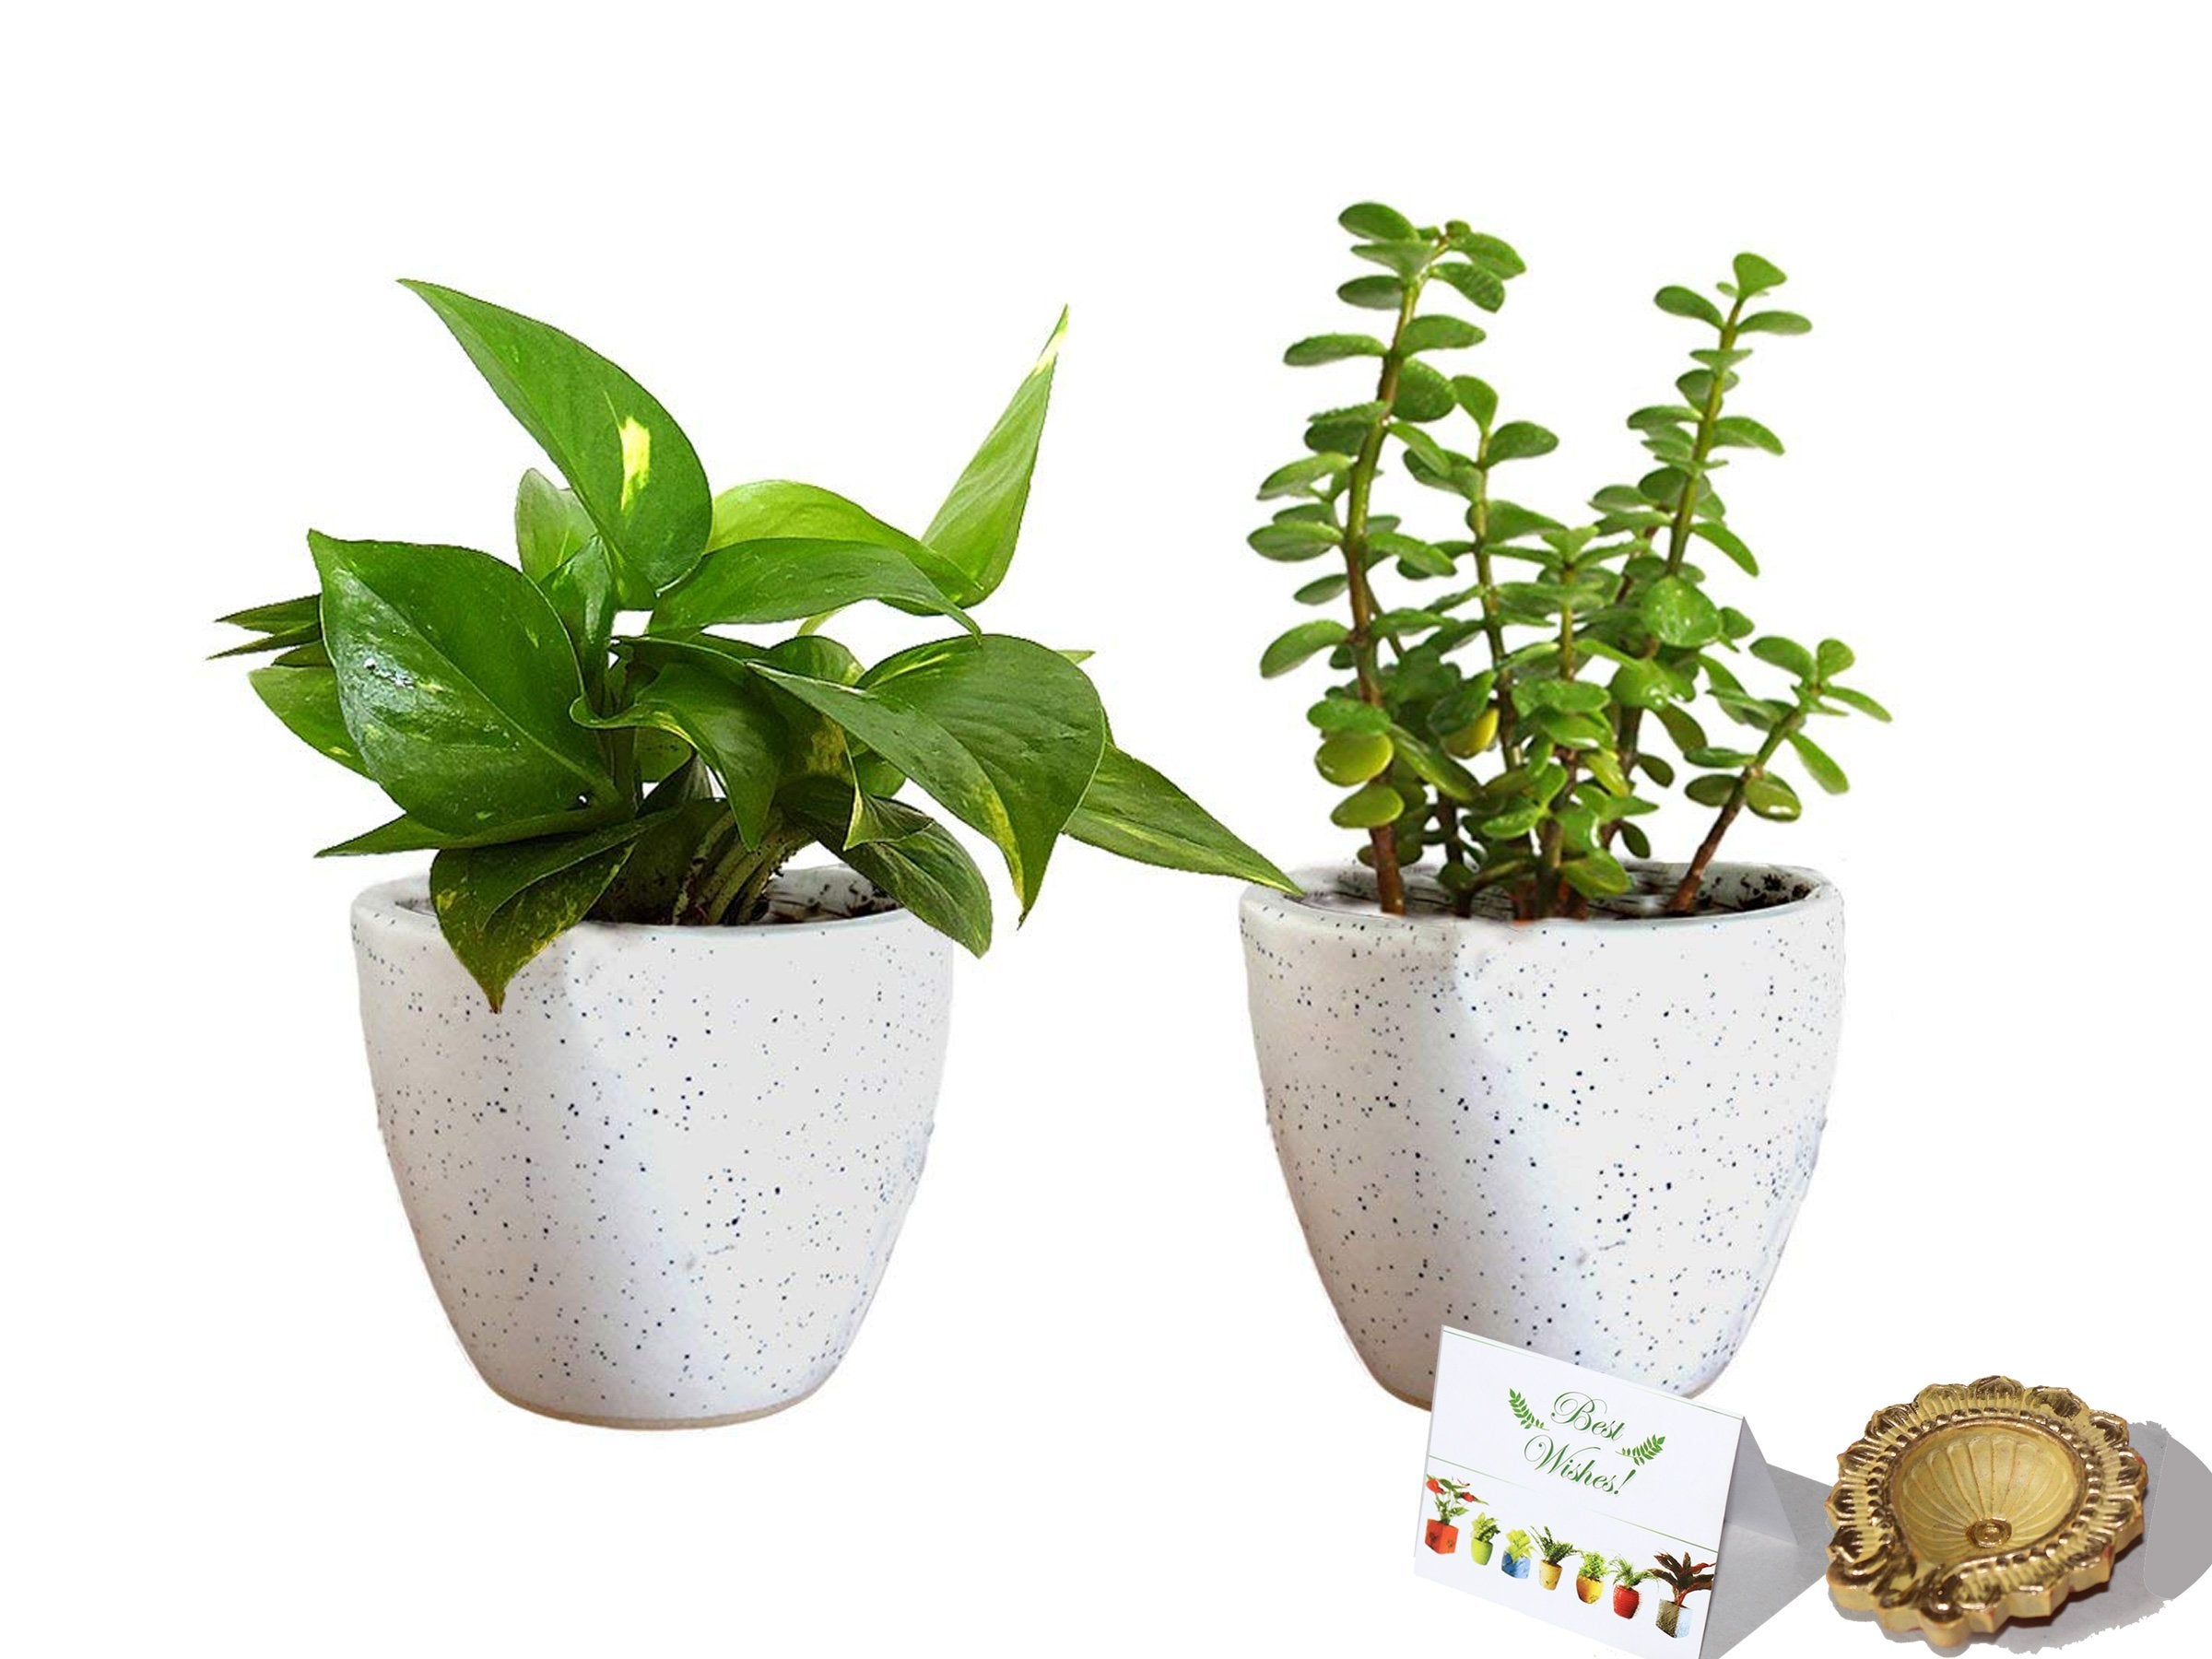 Rolling Nature Diwali Gift Combo of Good Luck  Money Plant And Jade Plant In White Round Dew Ceramic Pot